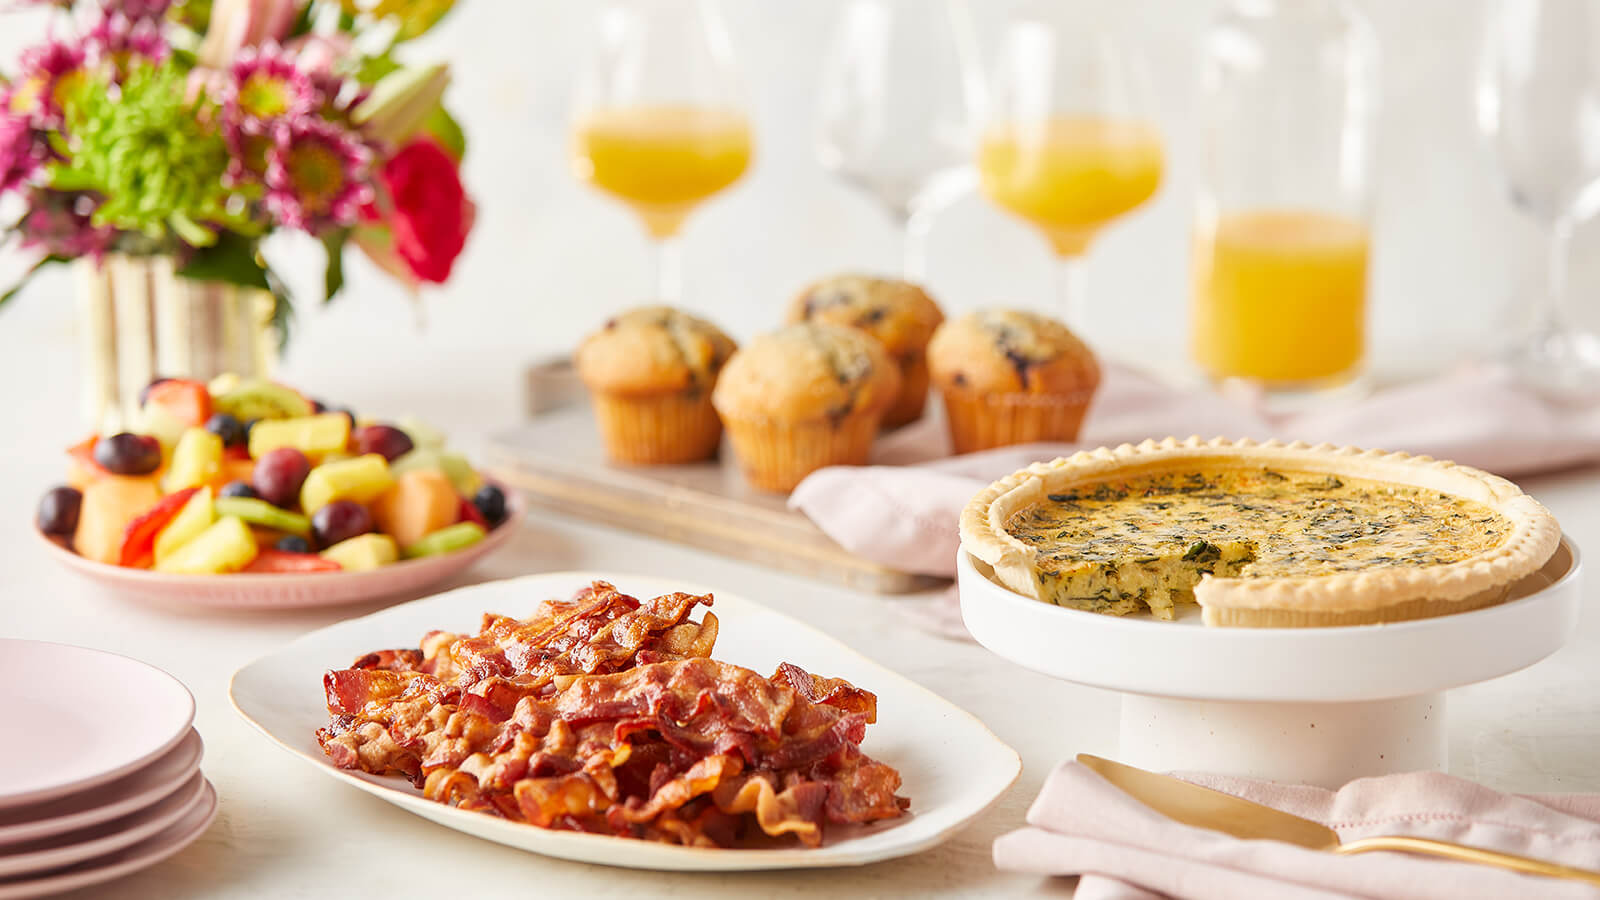 Mother S Day Brunch Broccoli Cheddar Quiche Holiday Meals In Store Pickup The Fresh Market